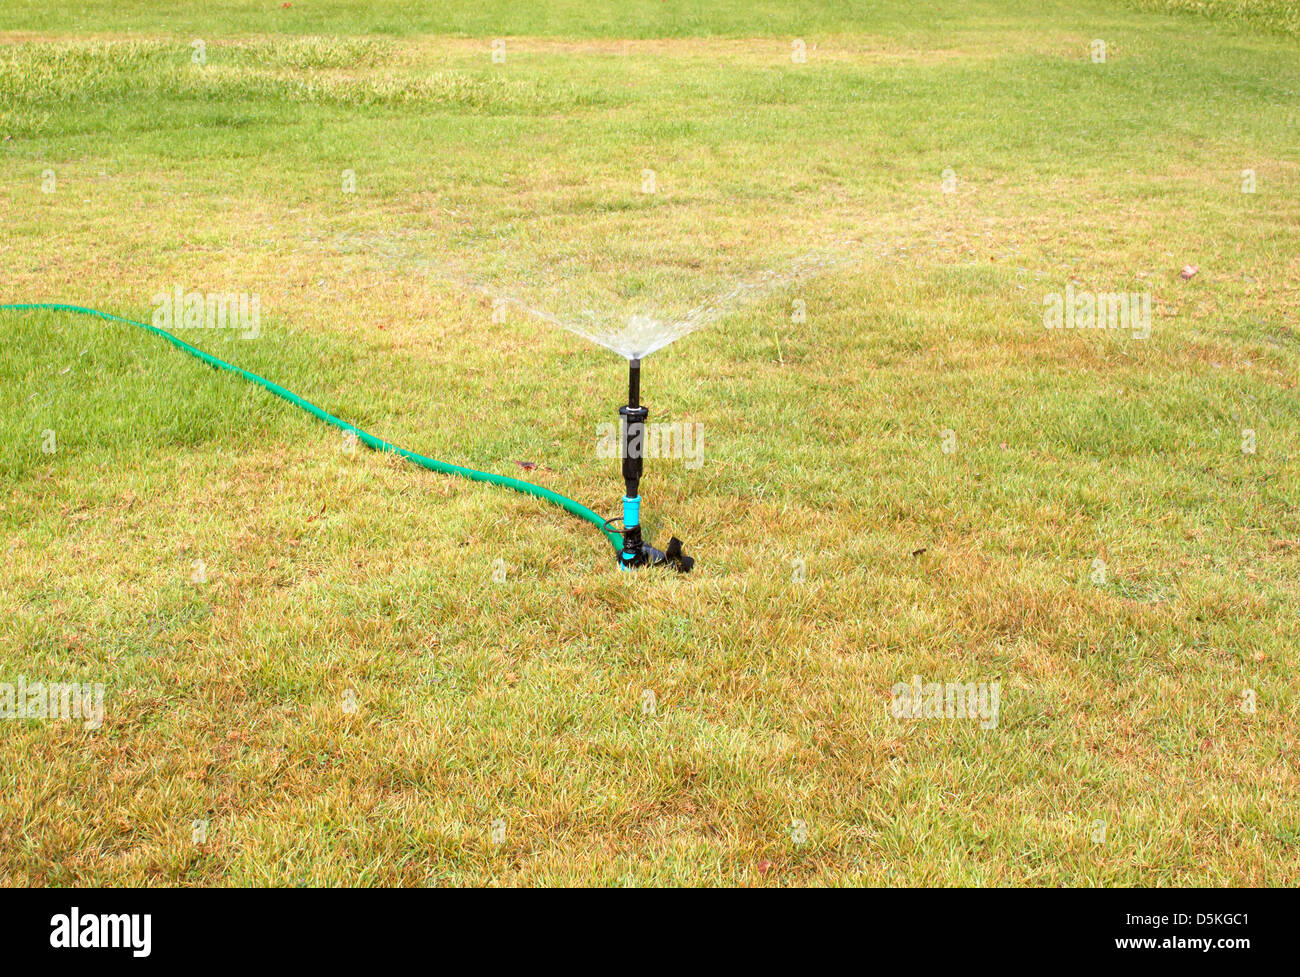 Water sprinkler. Irrigation system - technique of watering in the garden. Lawn sprinkler spraying water over green - Stock Image